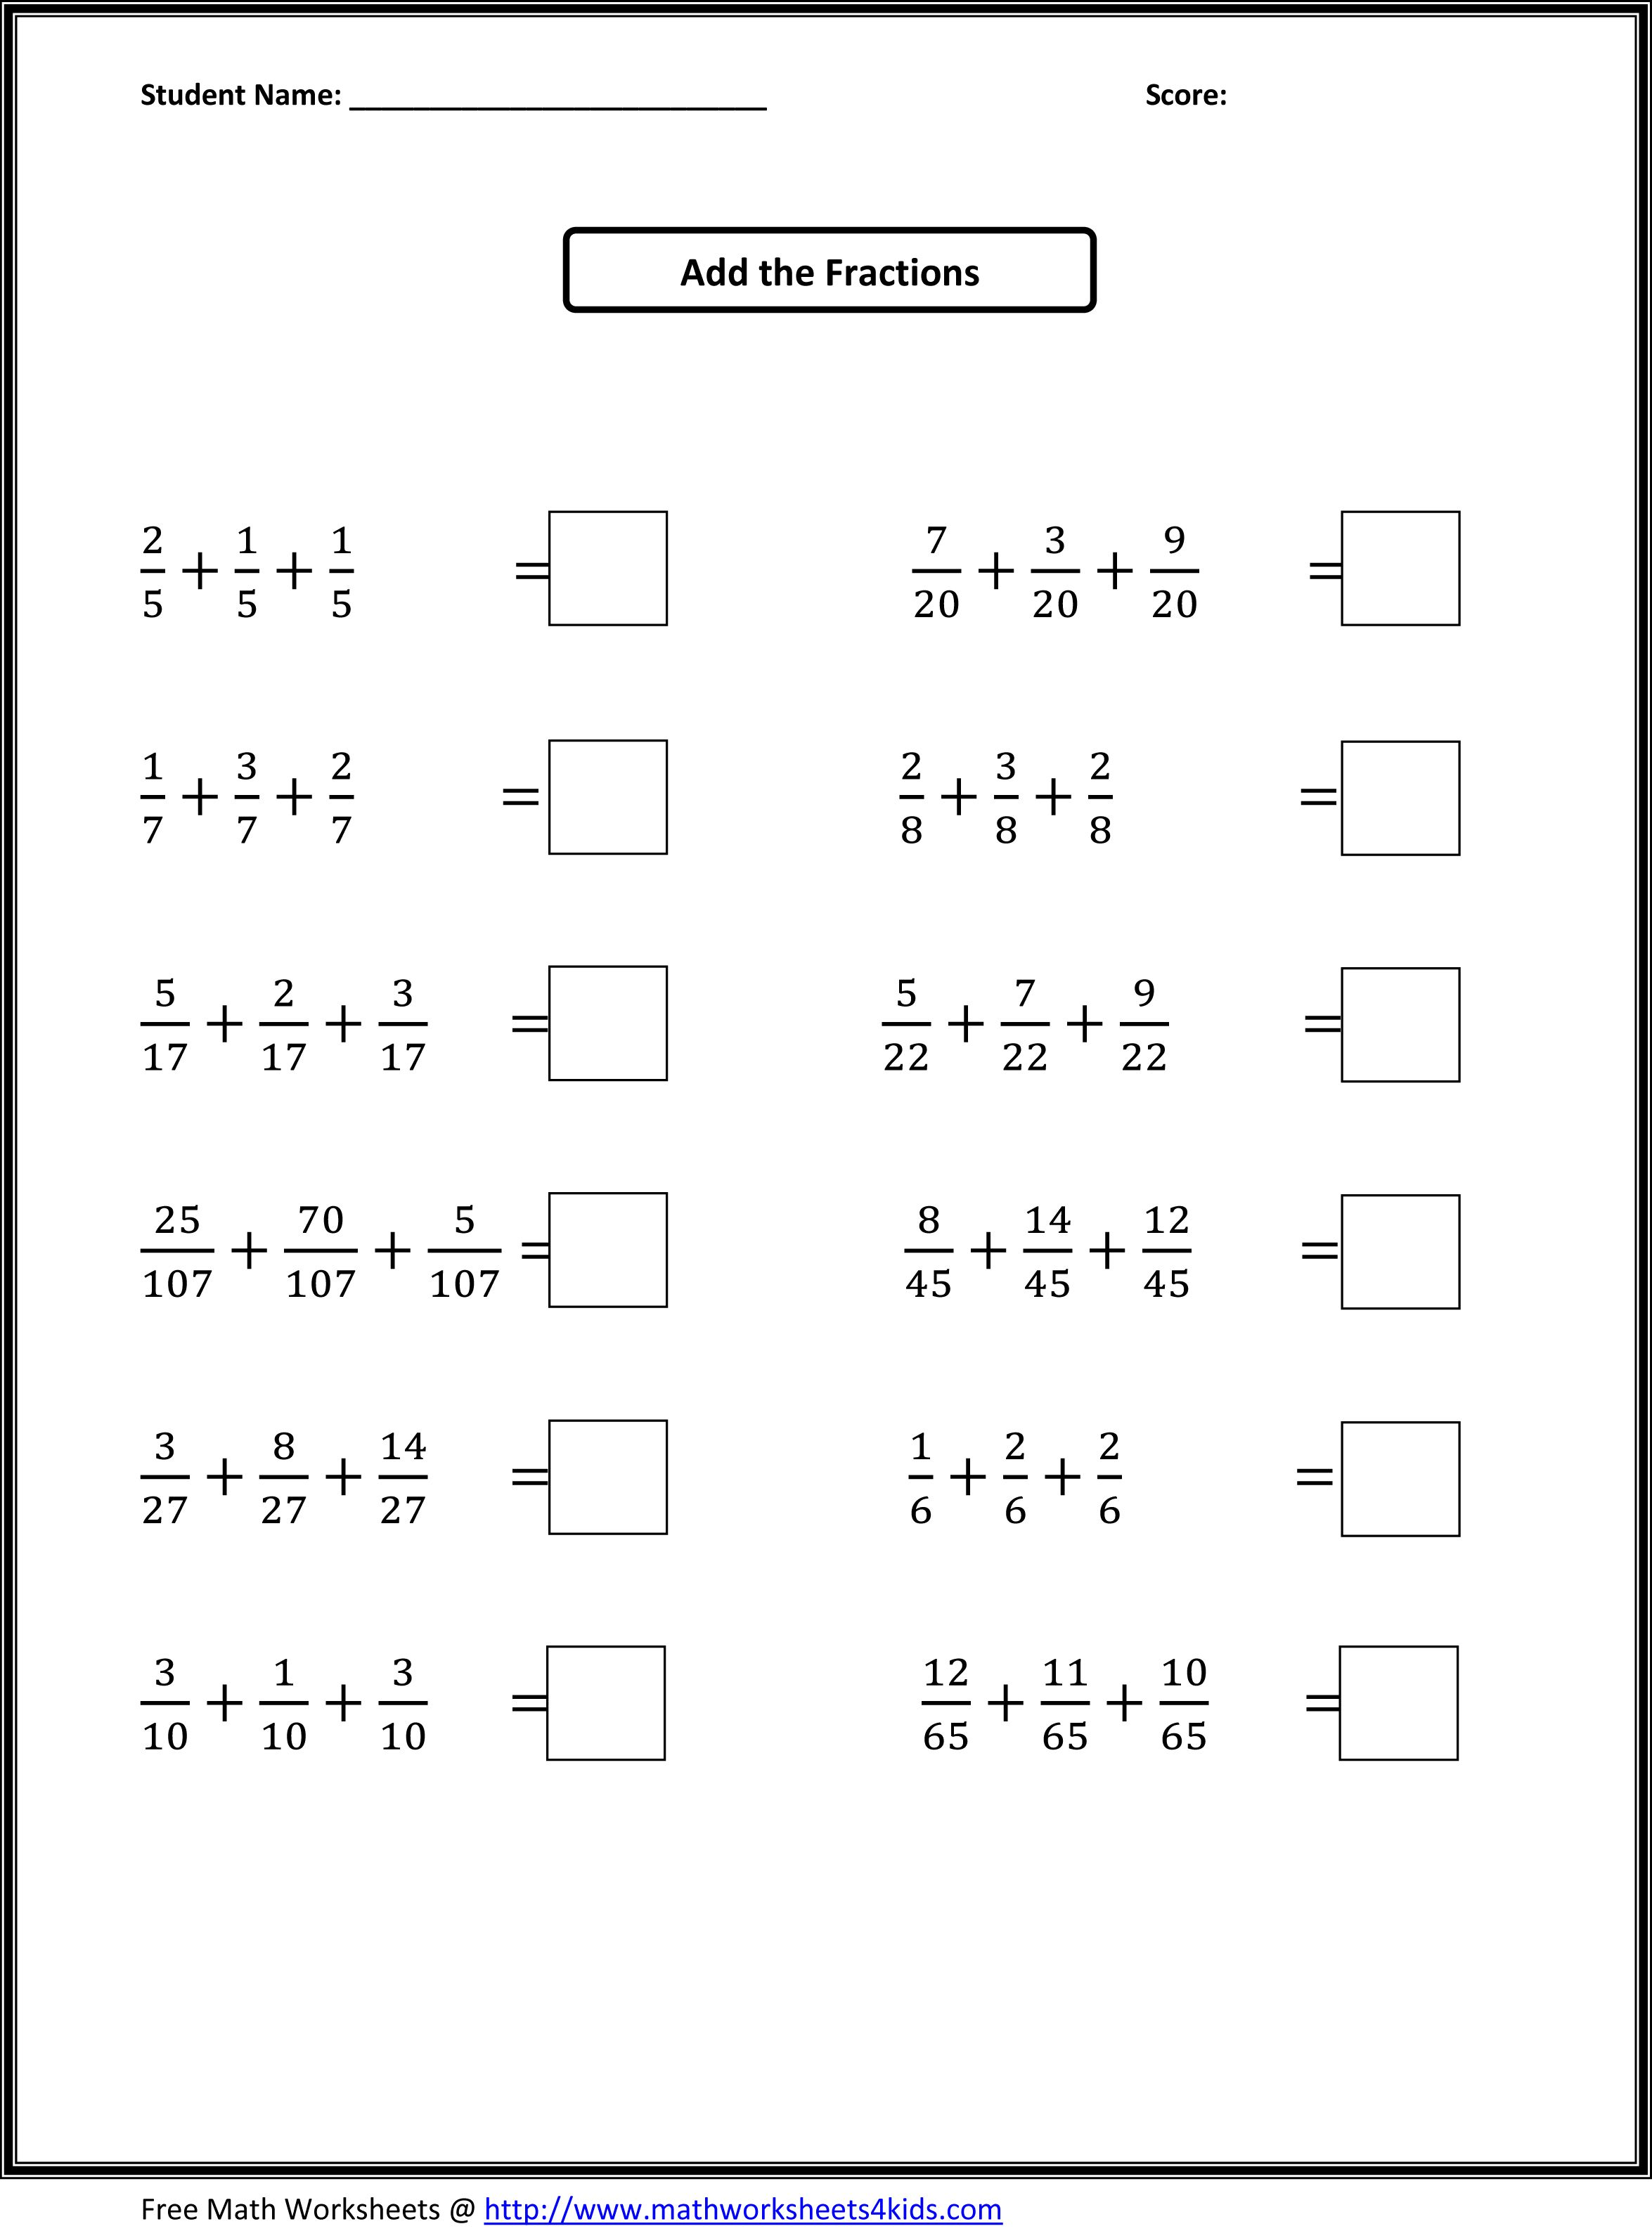 Math Worksheets For Fourth Graders - Syndeomedia